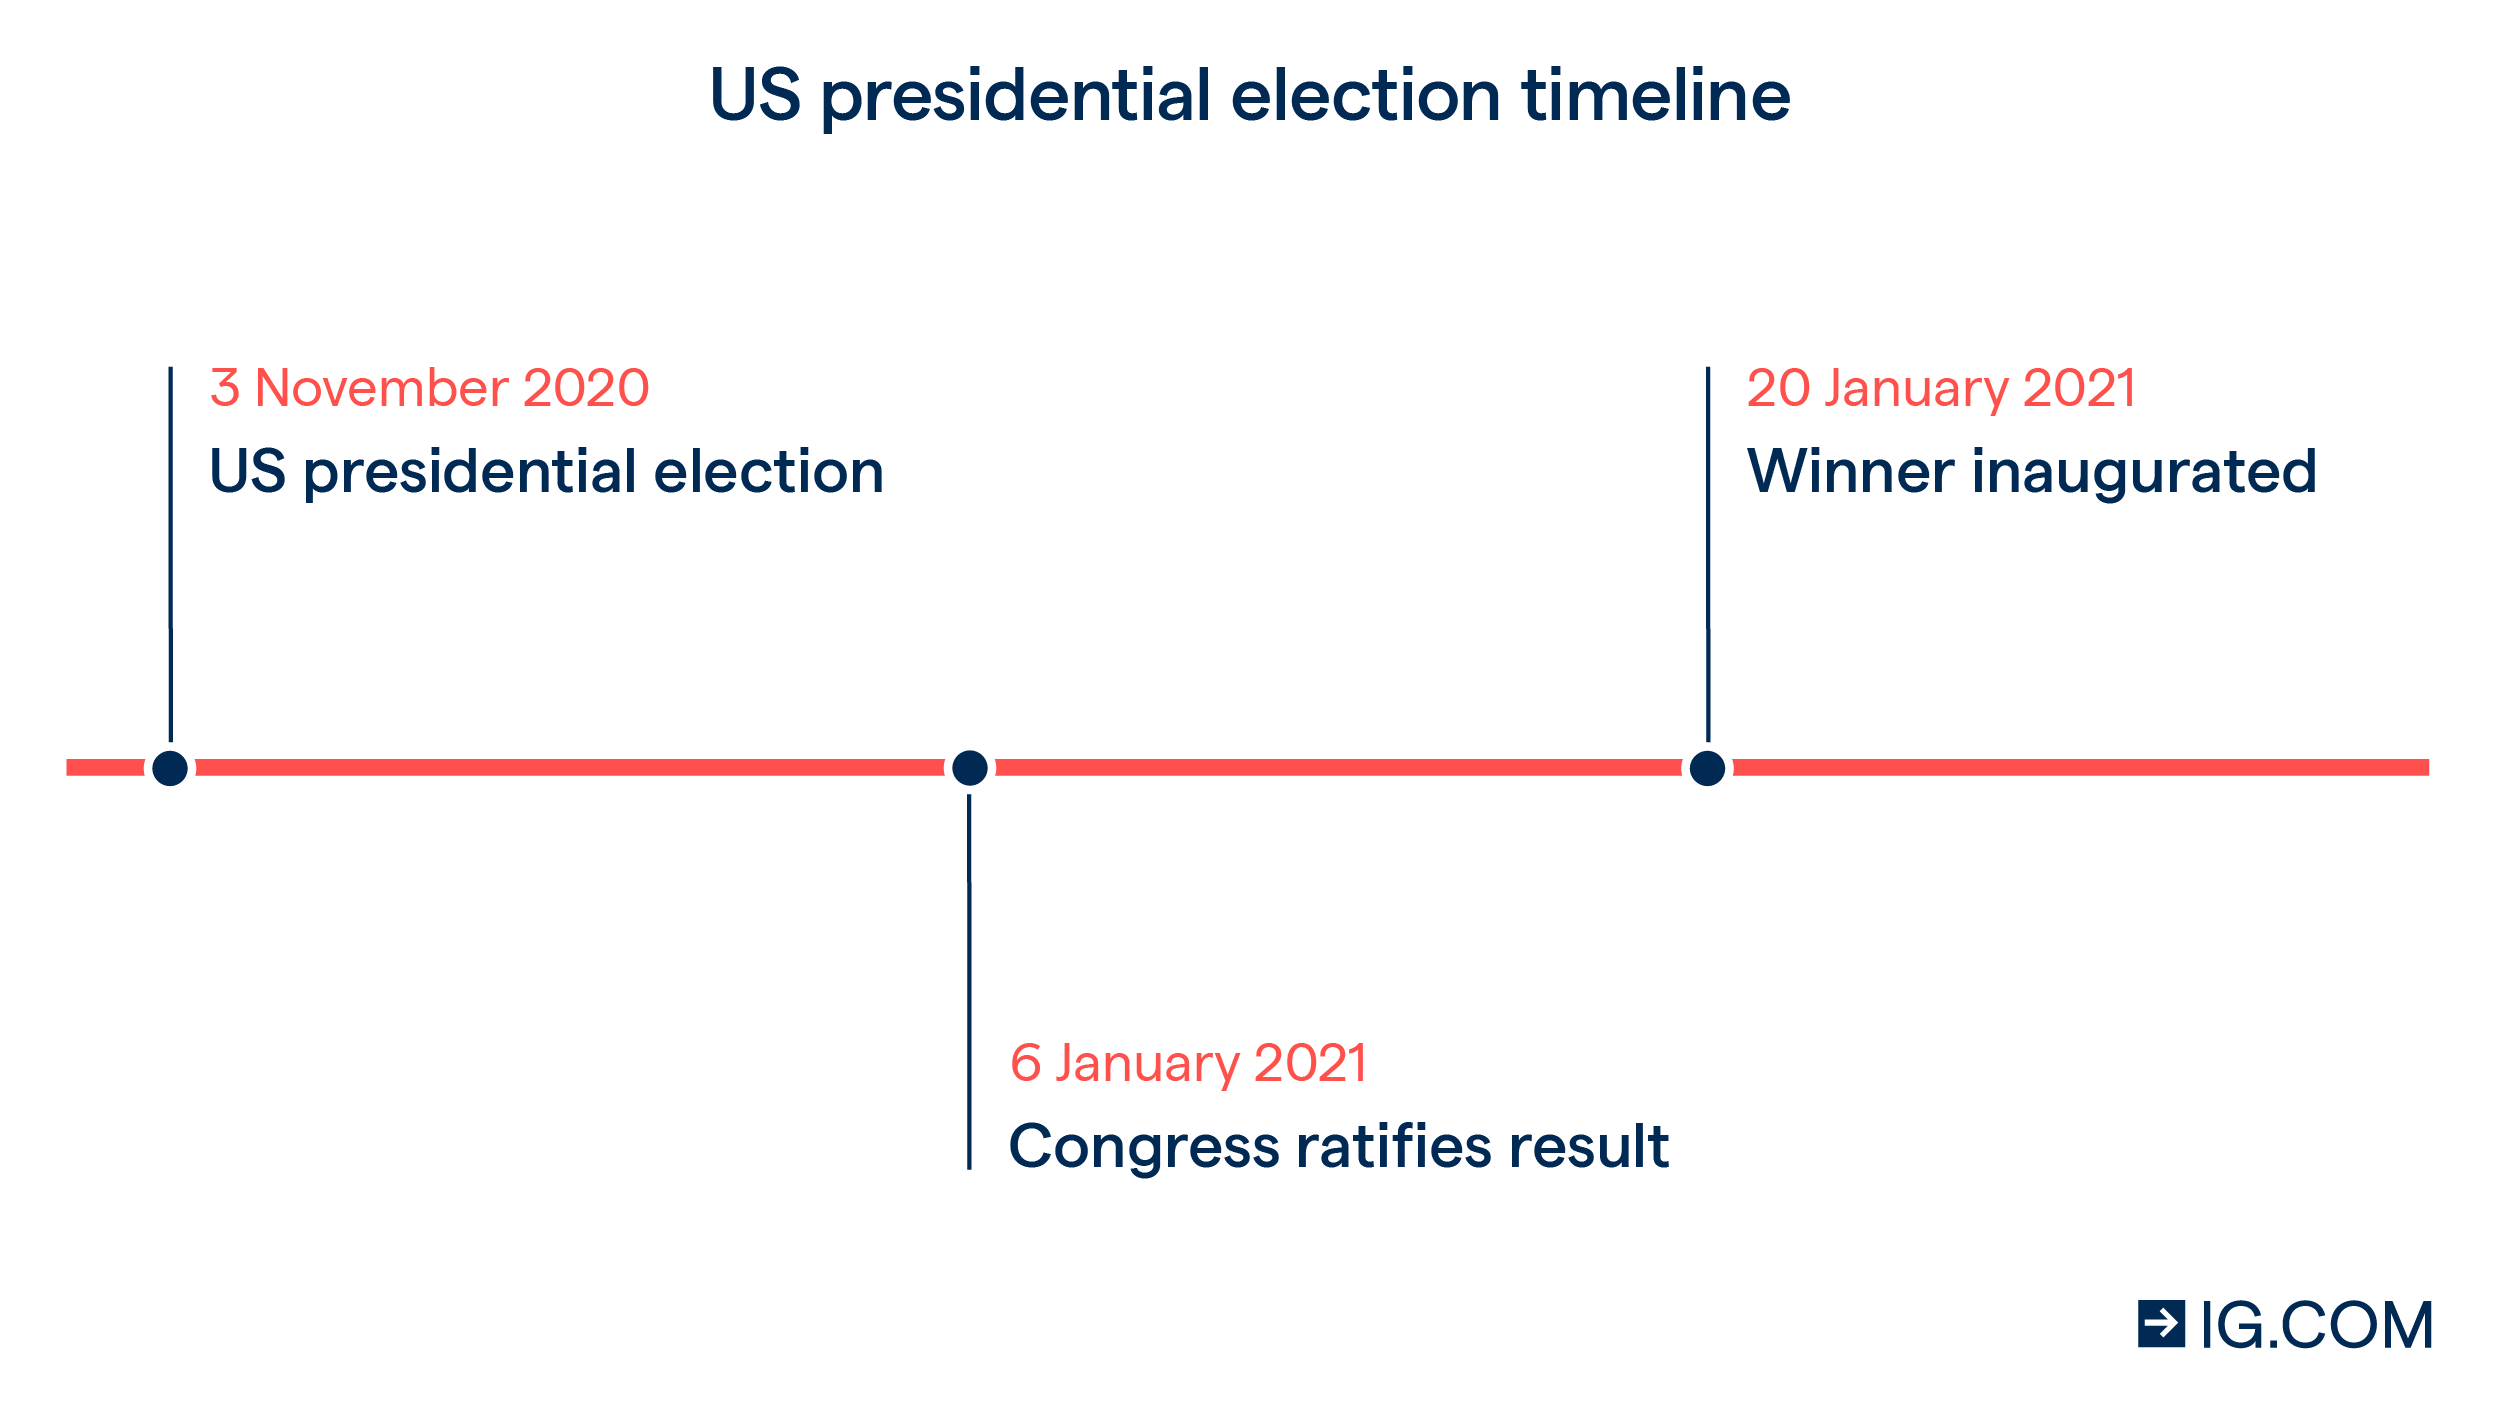 US presidential election timeline